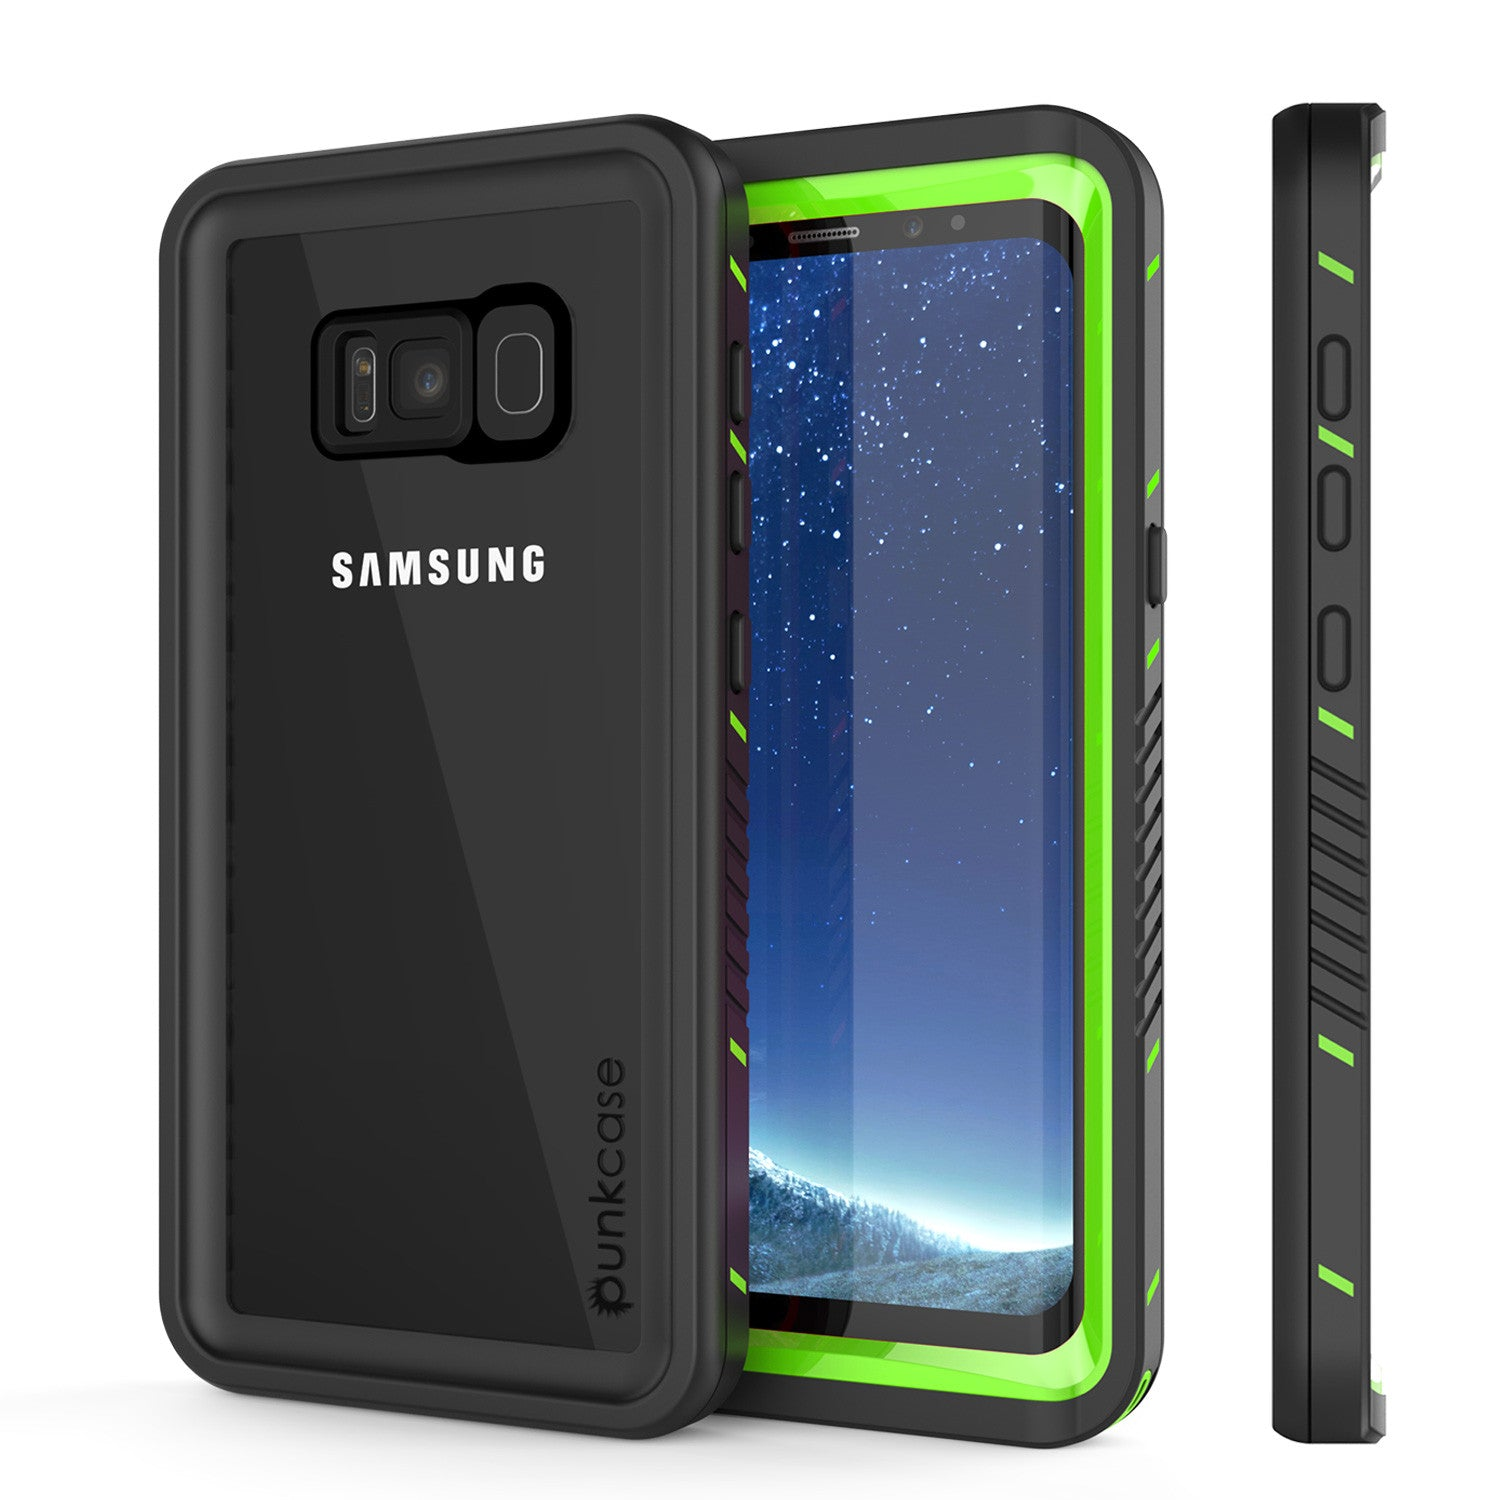 Galaxy S8 PLUS Waterproof Case, Punkcase [Extreme Series] Slim Fit, Armor Cover W/ Built In Screen Protector for Samsung Galaxy S8+ [Green]